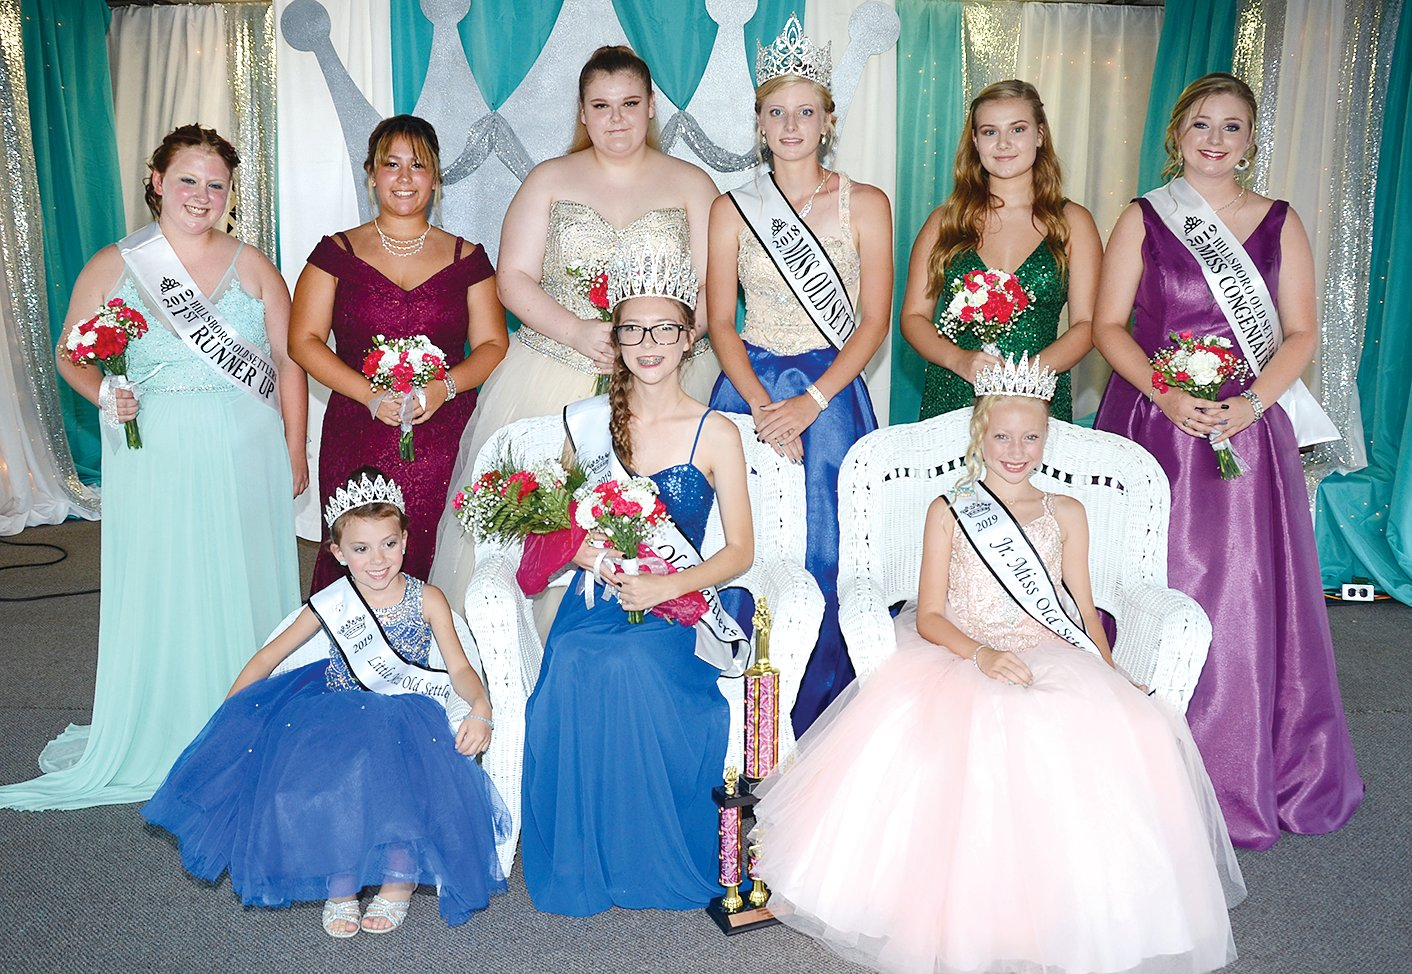 Members of this year's Old Settlers Queen court, in front, from the left are 2019 Little Miss Old Settlers Adalynn Hollo, 2019 Old Settlers Queen and Miss Photogenic Caitlyn Howard and 2019 Junior Miss Old Settlers Lucy Moxey. In back are first runner-up Brianna Stephens, Erin Moore, Josie Havens, retiring 2018 Old Settlers Queen Kelly Jansen, Malorie Scurlock and Miss Congeniality Morgan Schaake.